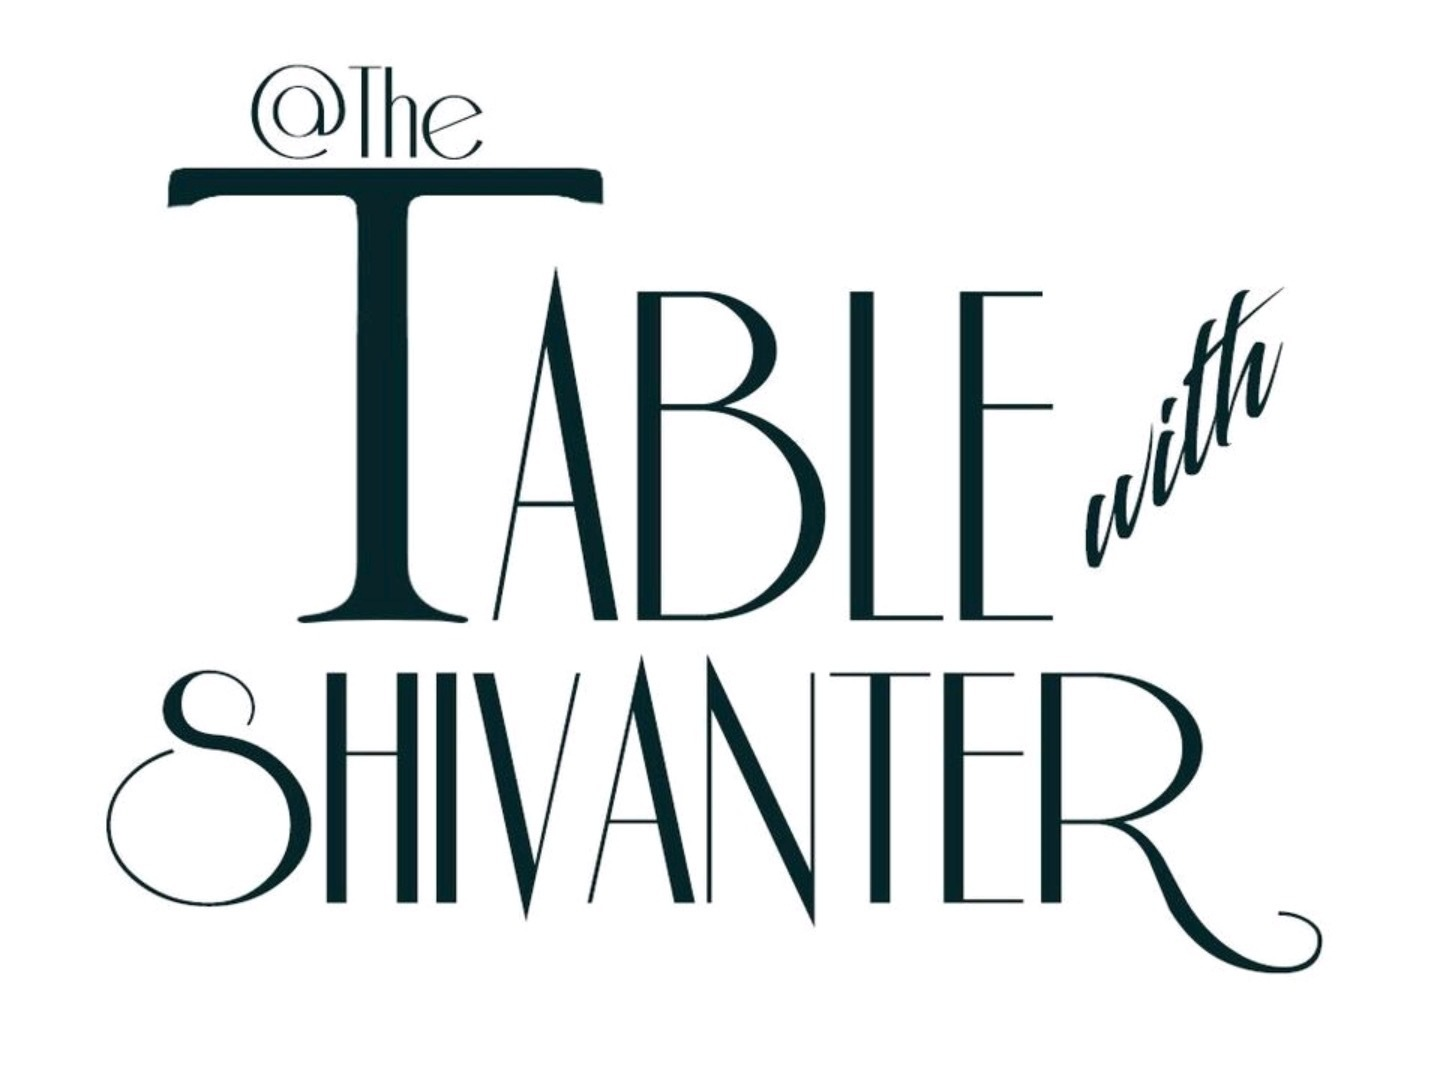 The Table with Shivanter